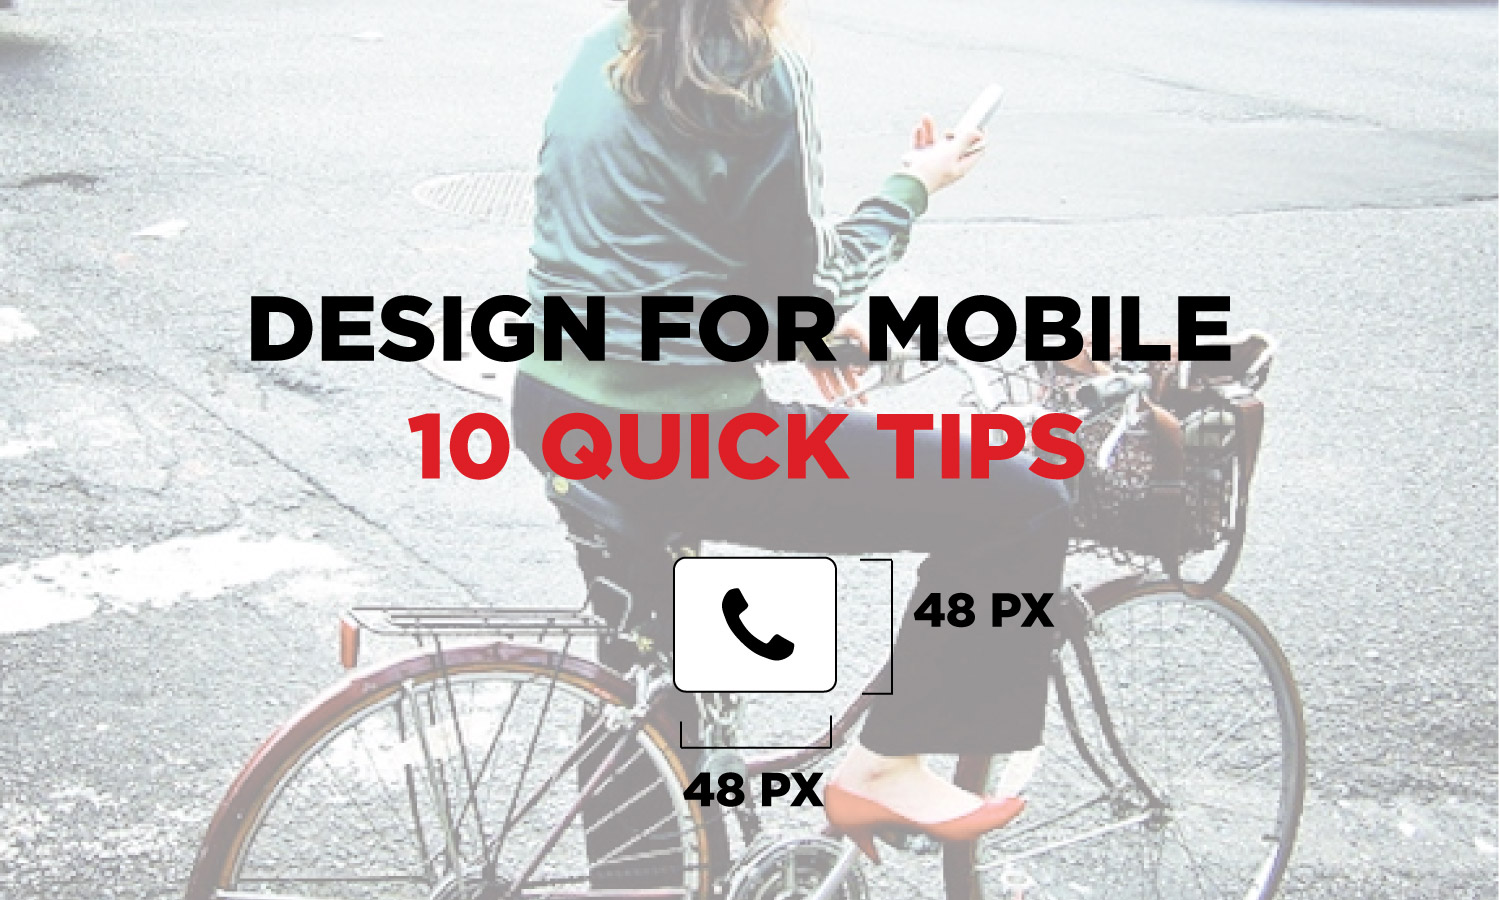 Design for mobile - 10 quick tips